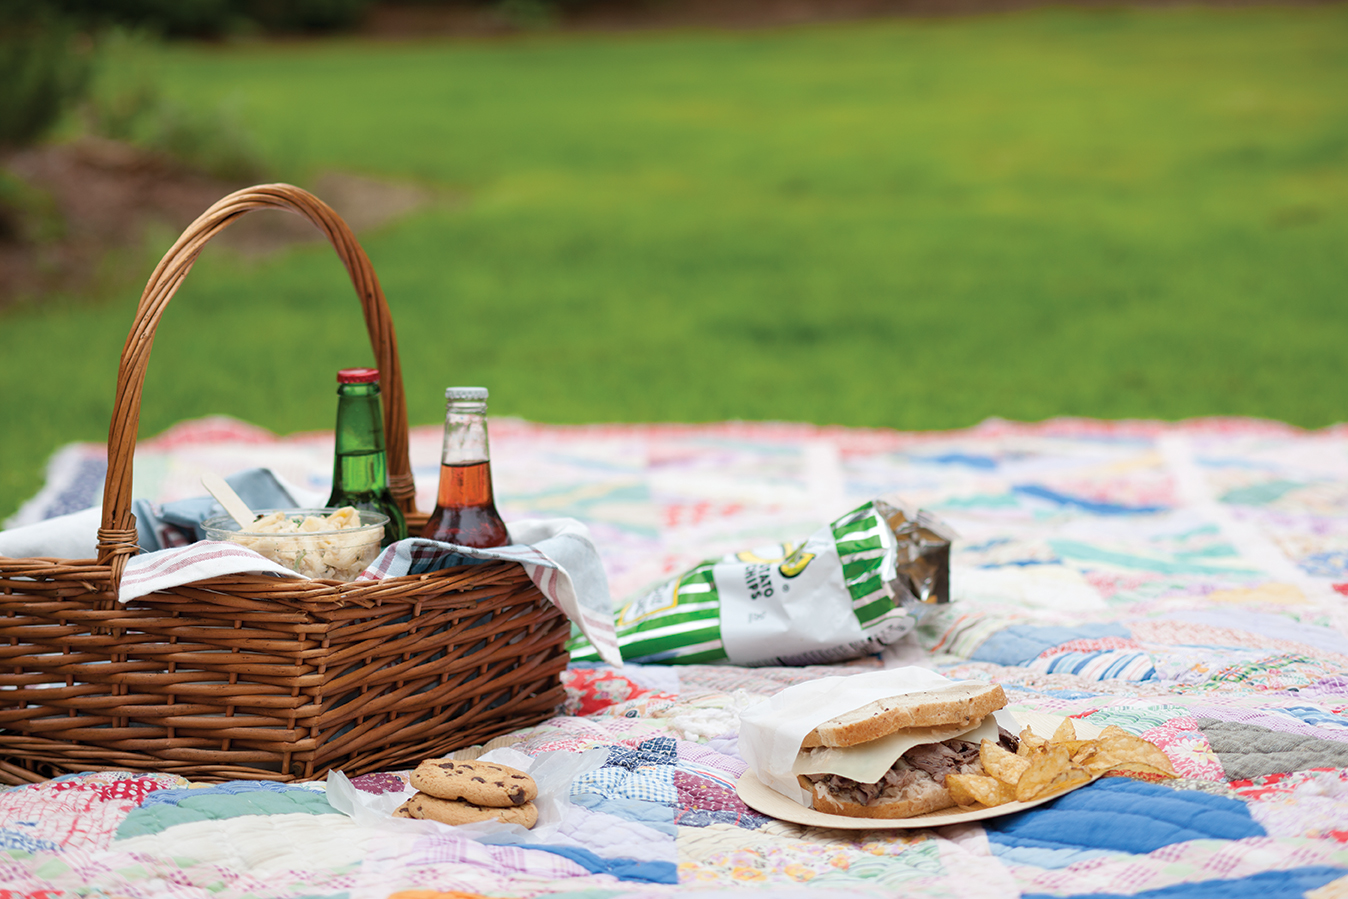 Best Food Containers For Beach Picnic